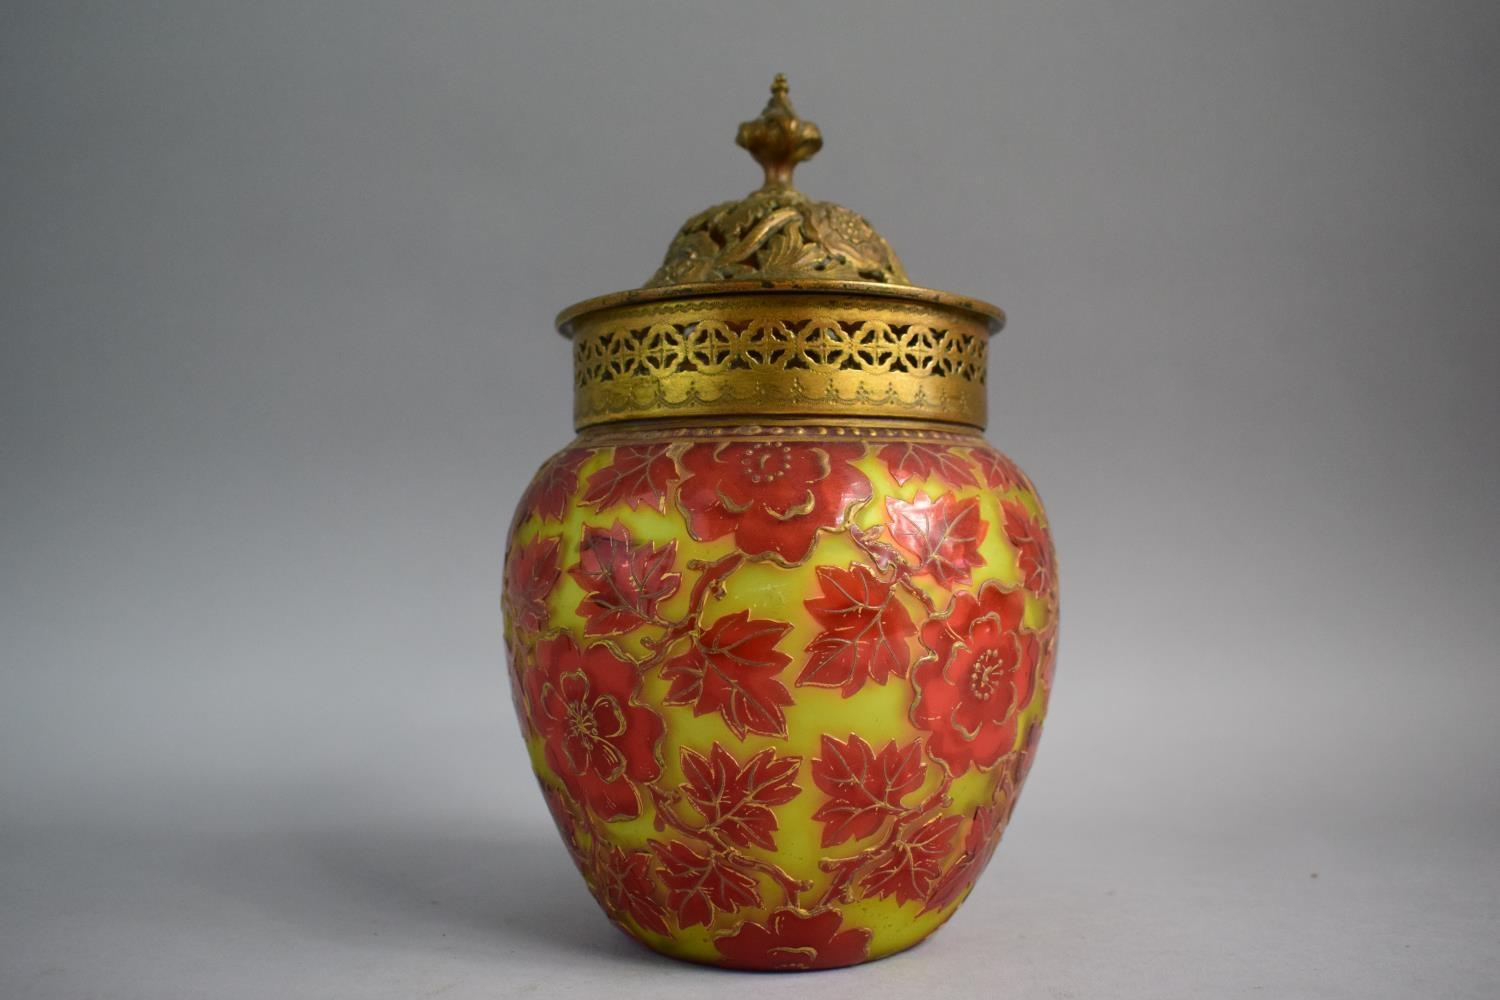 Lot 365 - A Late 19th Century Harrach Cameo Glass Pot Pourri with Pierced Gilt Metal Collar and Lid, 22.5cm